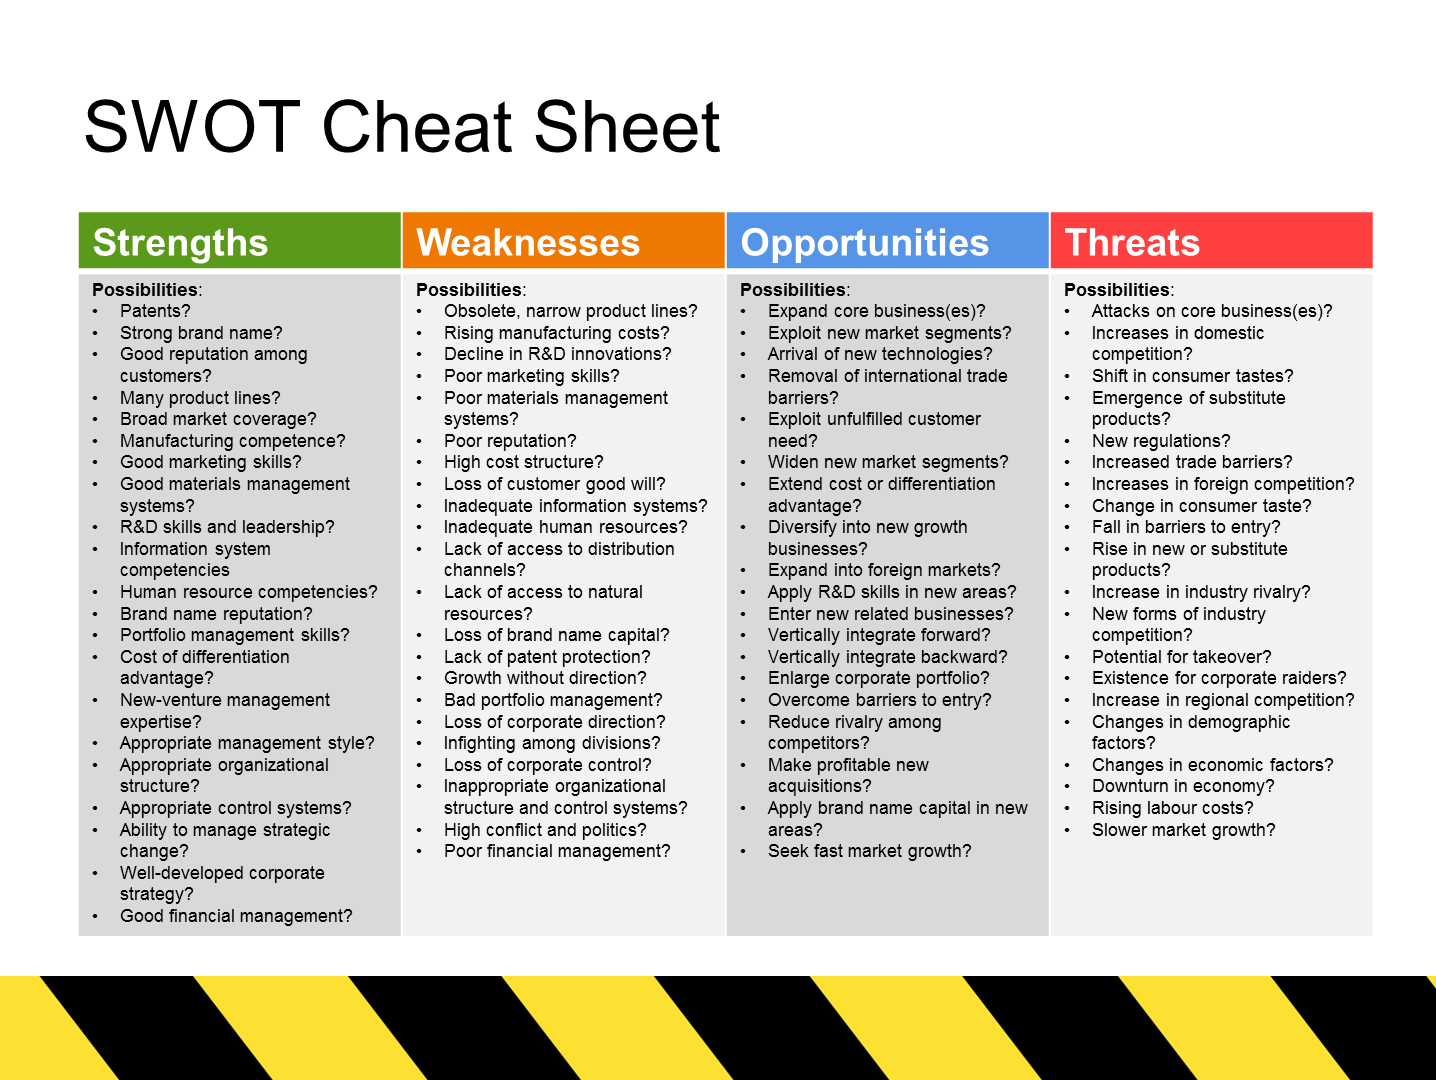 Questions to Ask During SWOT Analysis